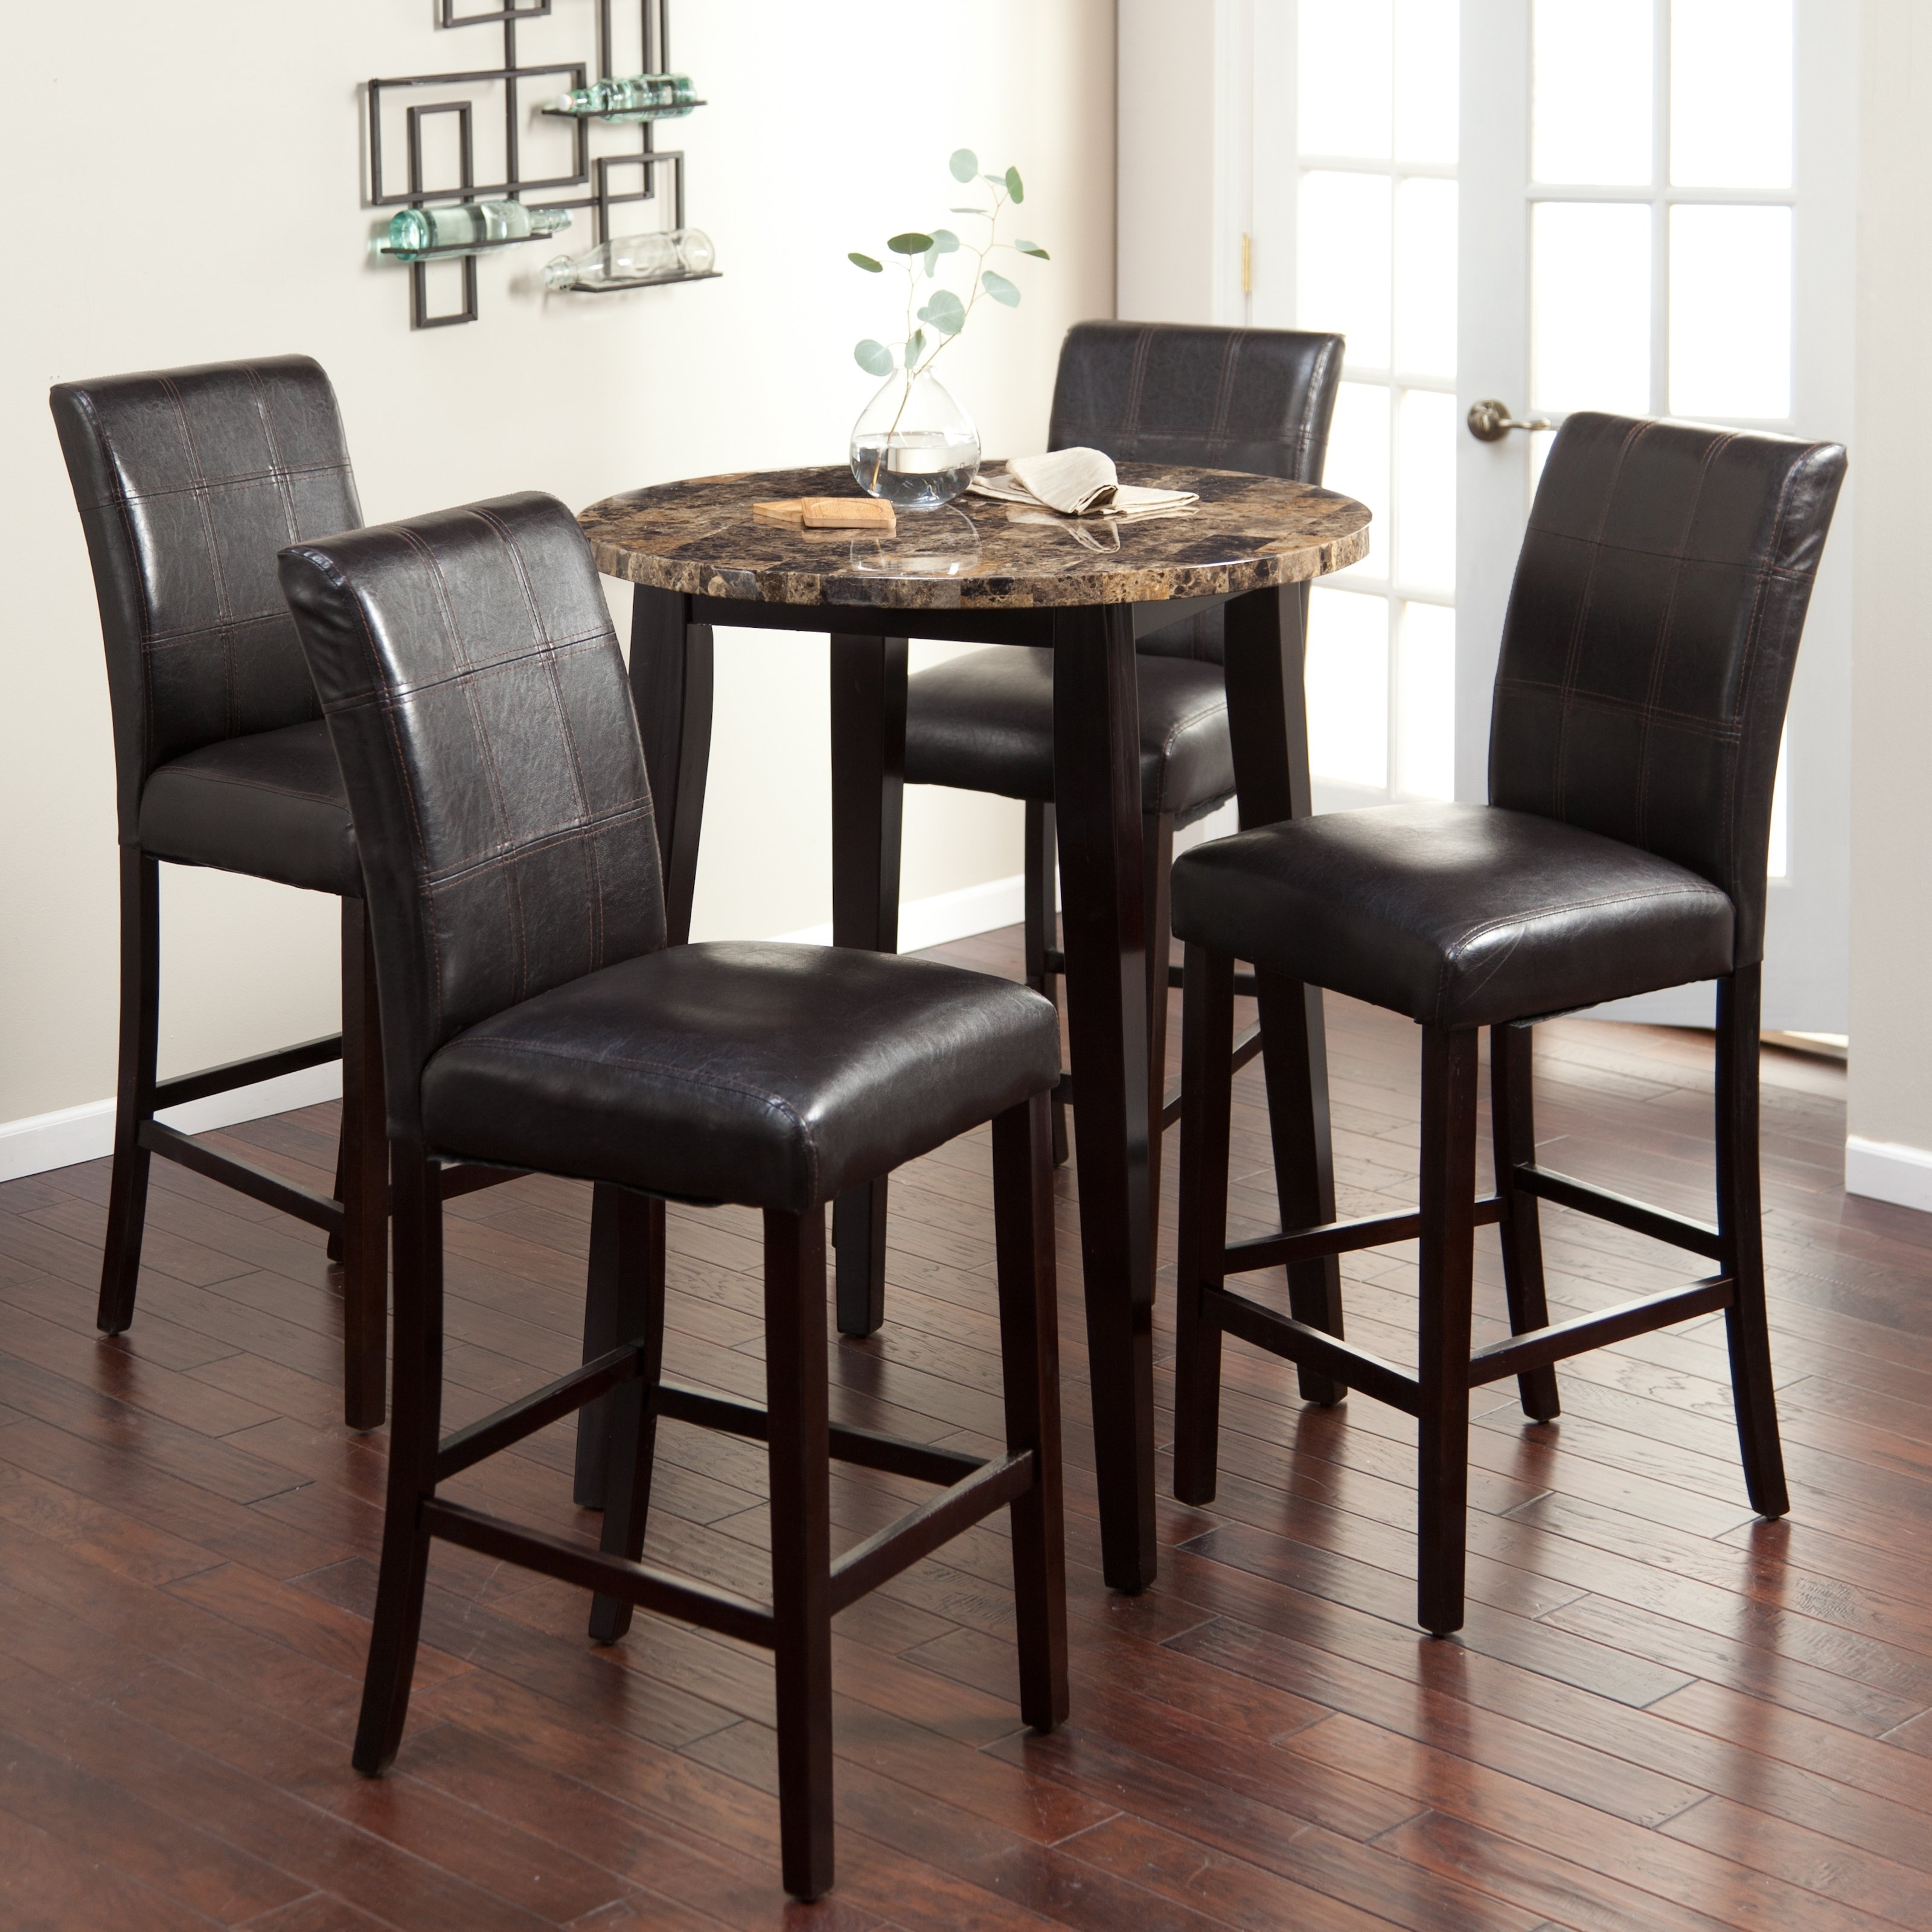 Stylish Pub Tables And Chairs For You – Blogbeen With Best And Newest Palazzo 3 Piece Dining Table Sets (Image 20 of 20)